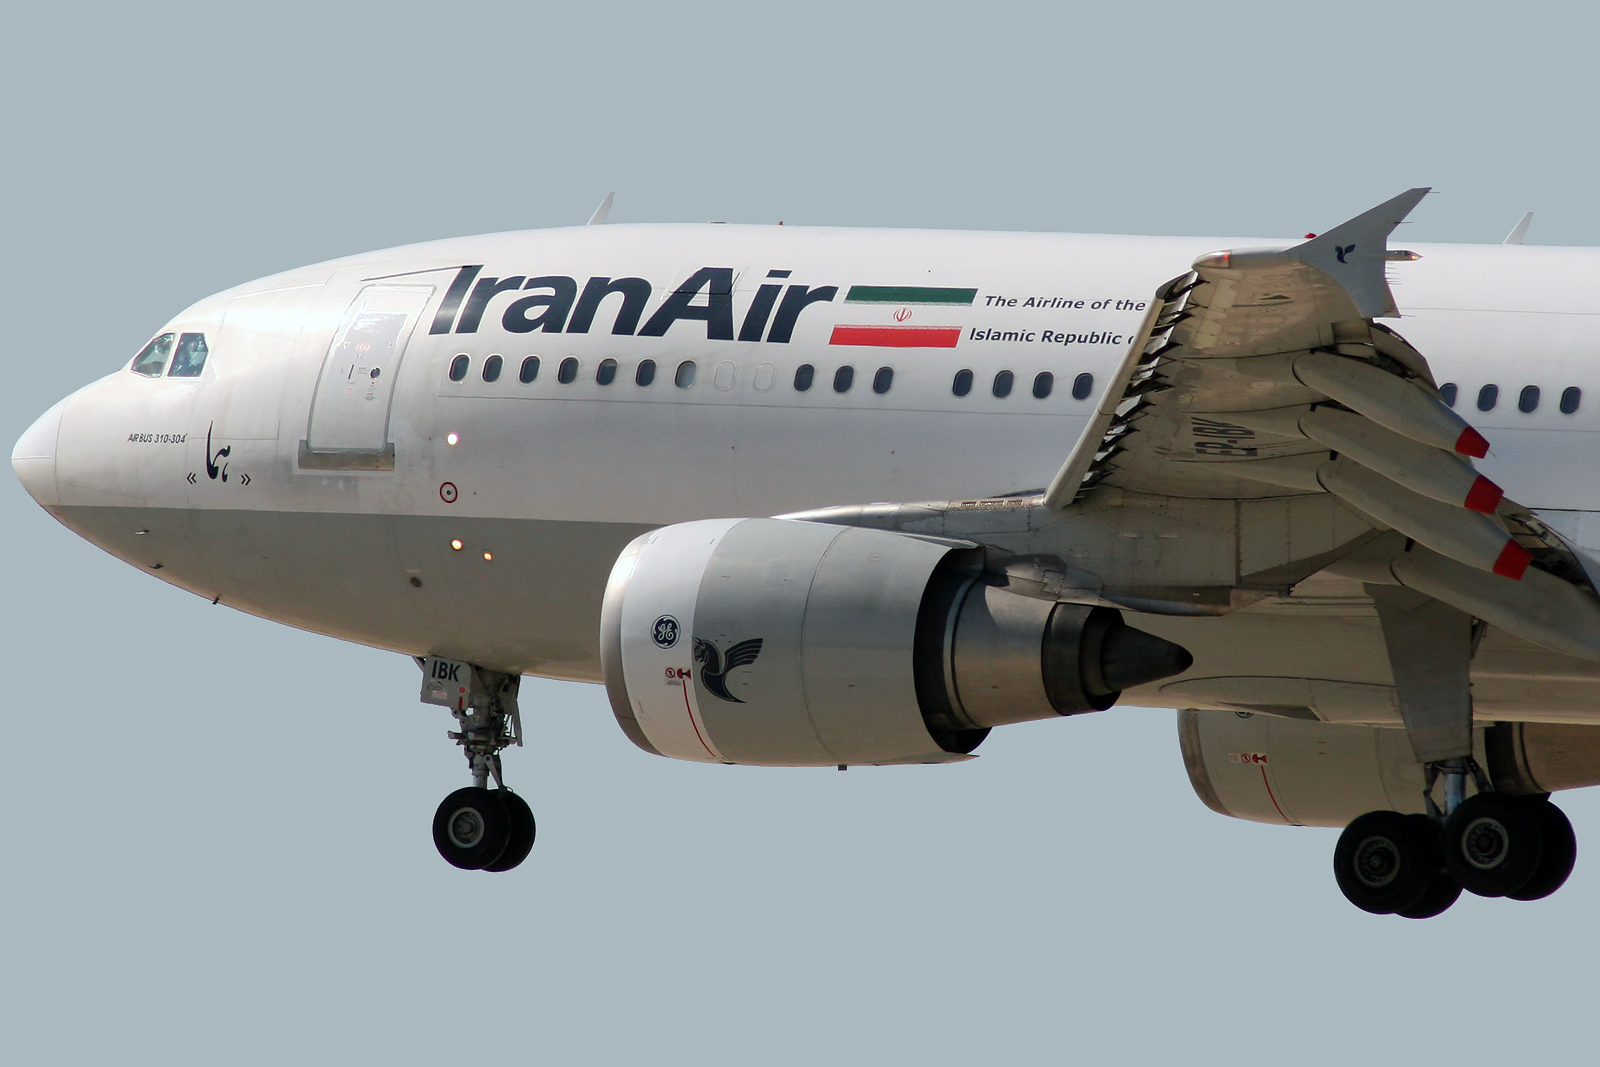 Airline atrocities? Let's talk about Iran Air 655